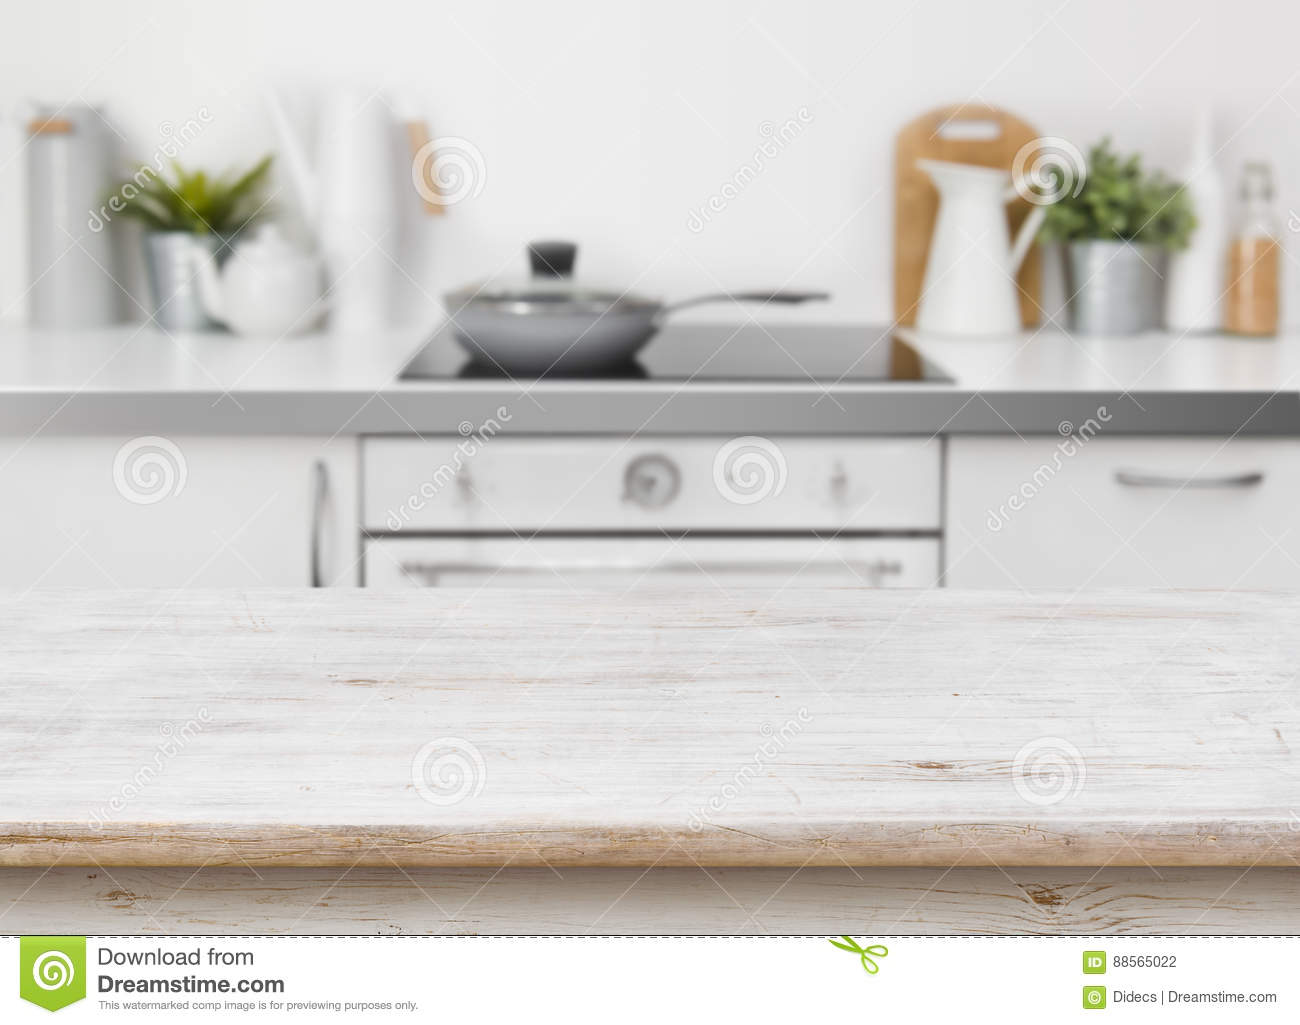 Fantastic Bleached Wooden Texture Table On Defocused Kitchen Bench Lamtechconsult Wood Chair Design Ideas Lamtechconsultcom